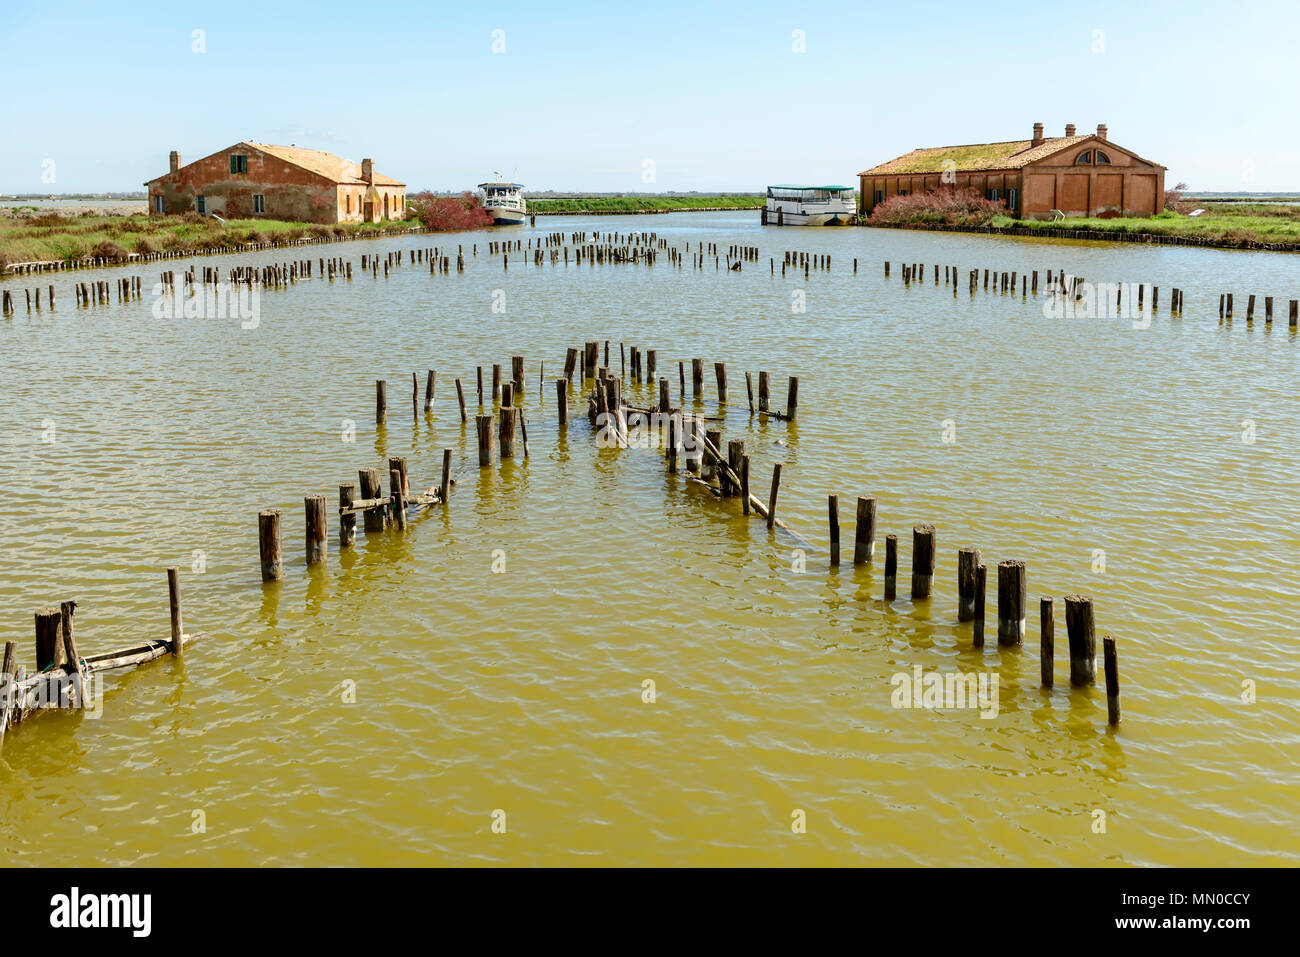 touristic passenger vessels moored near  historical fishing station buildings in the lagoon, shot in bright spring light at Comacchio, Ferrara,  Italy - Stock Image